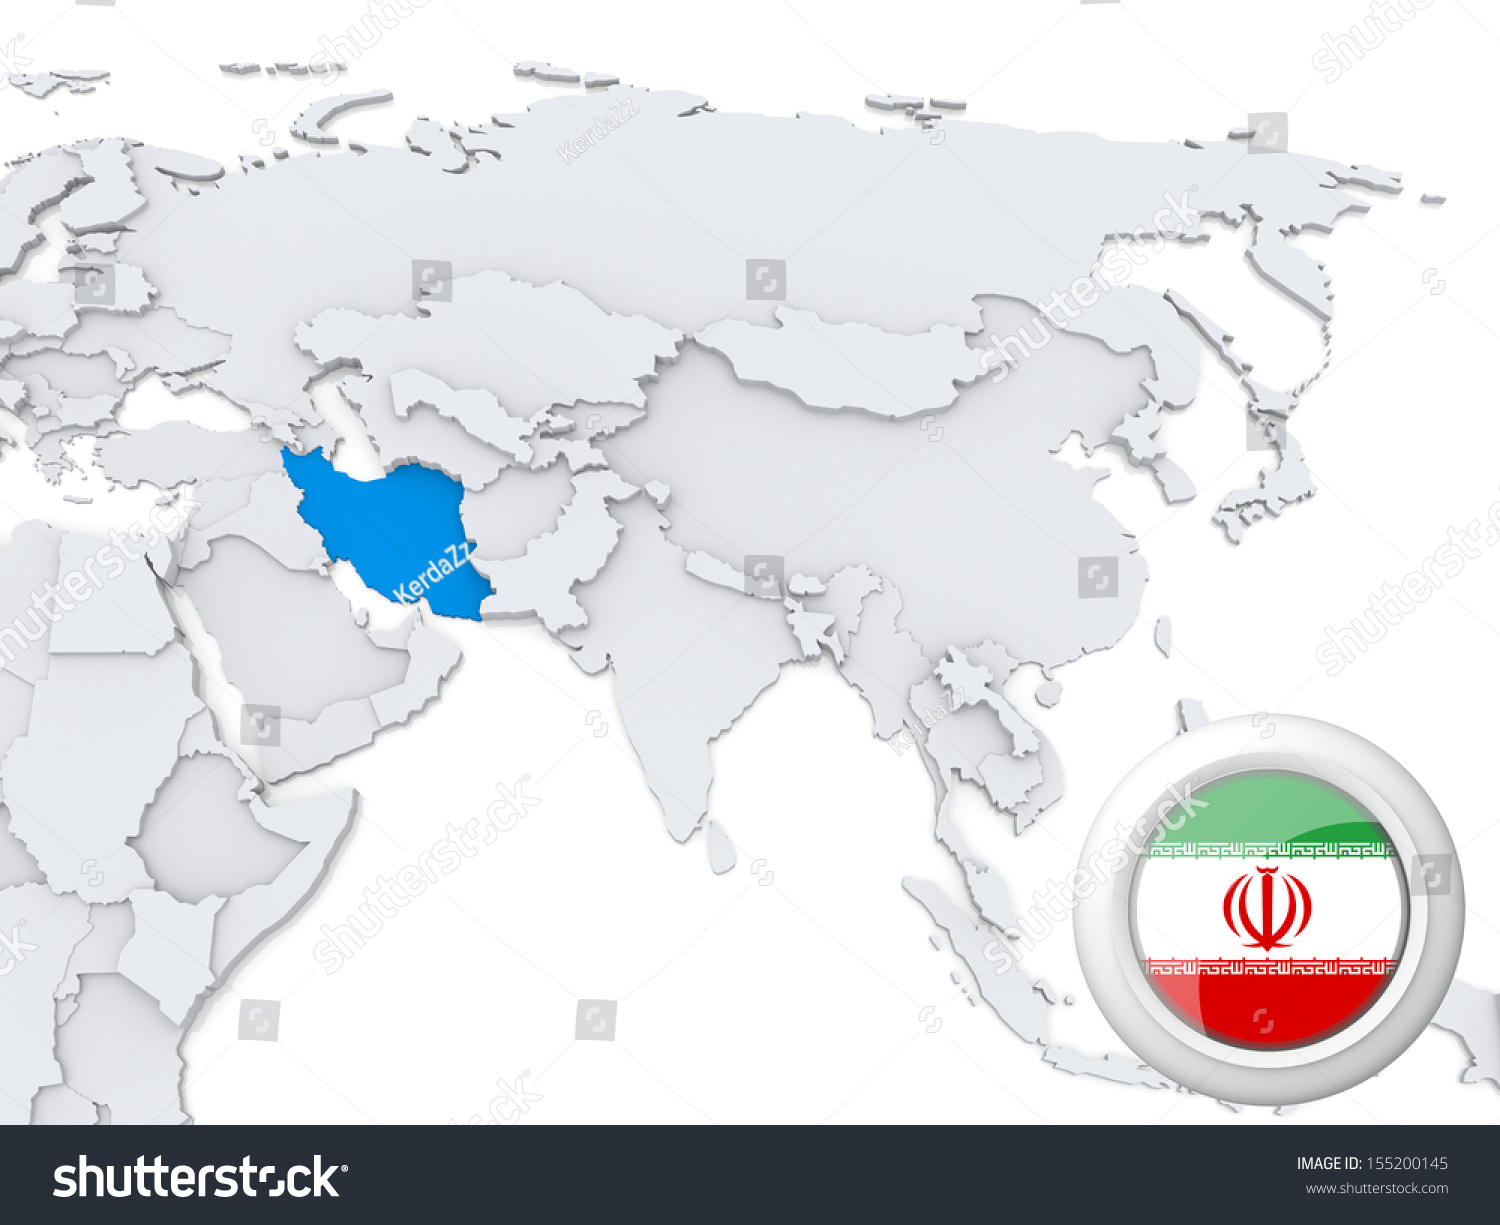 Dubai on a world map map of germany with cities mississippi state iran on world map where is dubai the united arab emirates dubai stock photo highlighted iran gumiabroncs Images